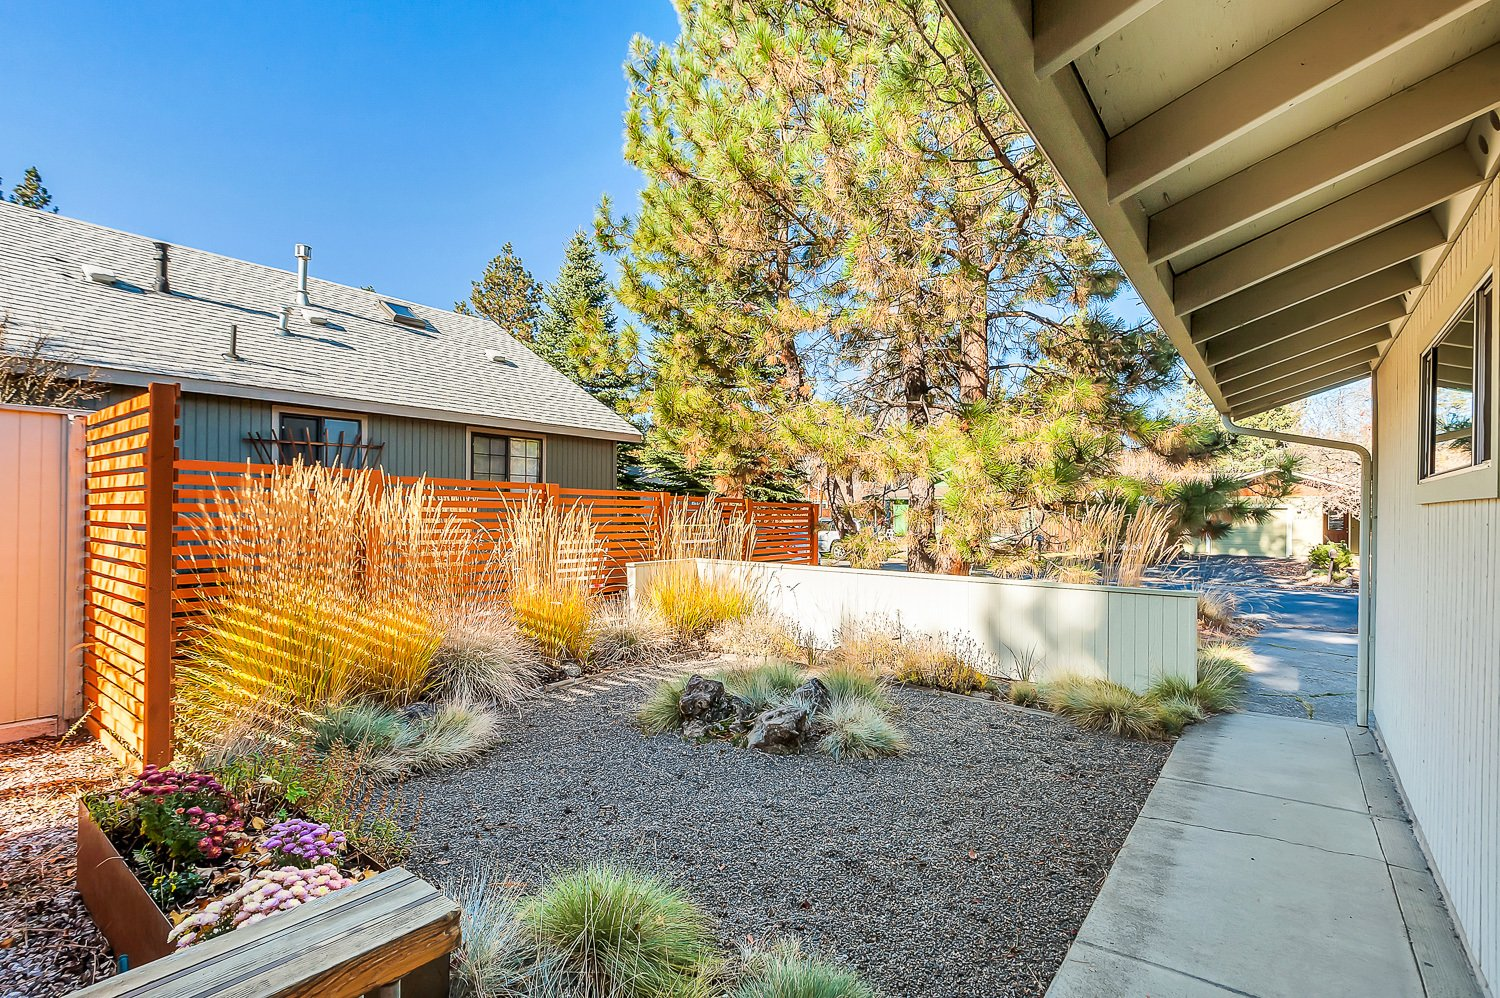 Outdoor, Stone Patio, Porch, Deck, Front Yard, Hardscapes, Boulders, Wood Fences, Wall, and Horizontal Fences, Wall Low-maintenance landscaping with native plants.  The Mod Ranch